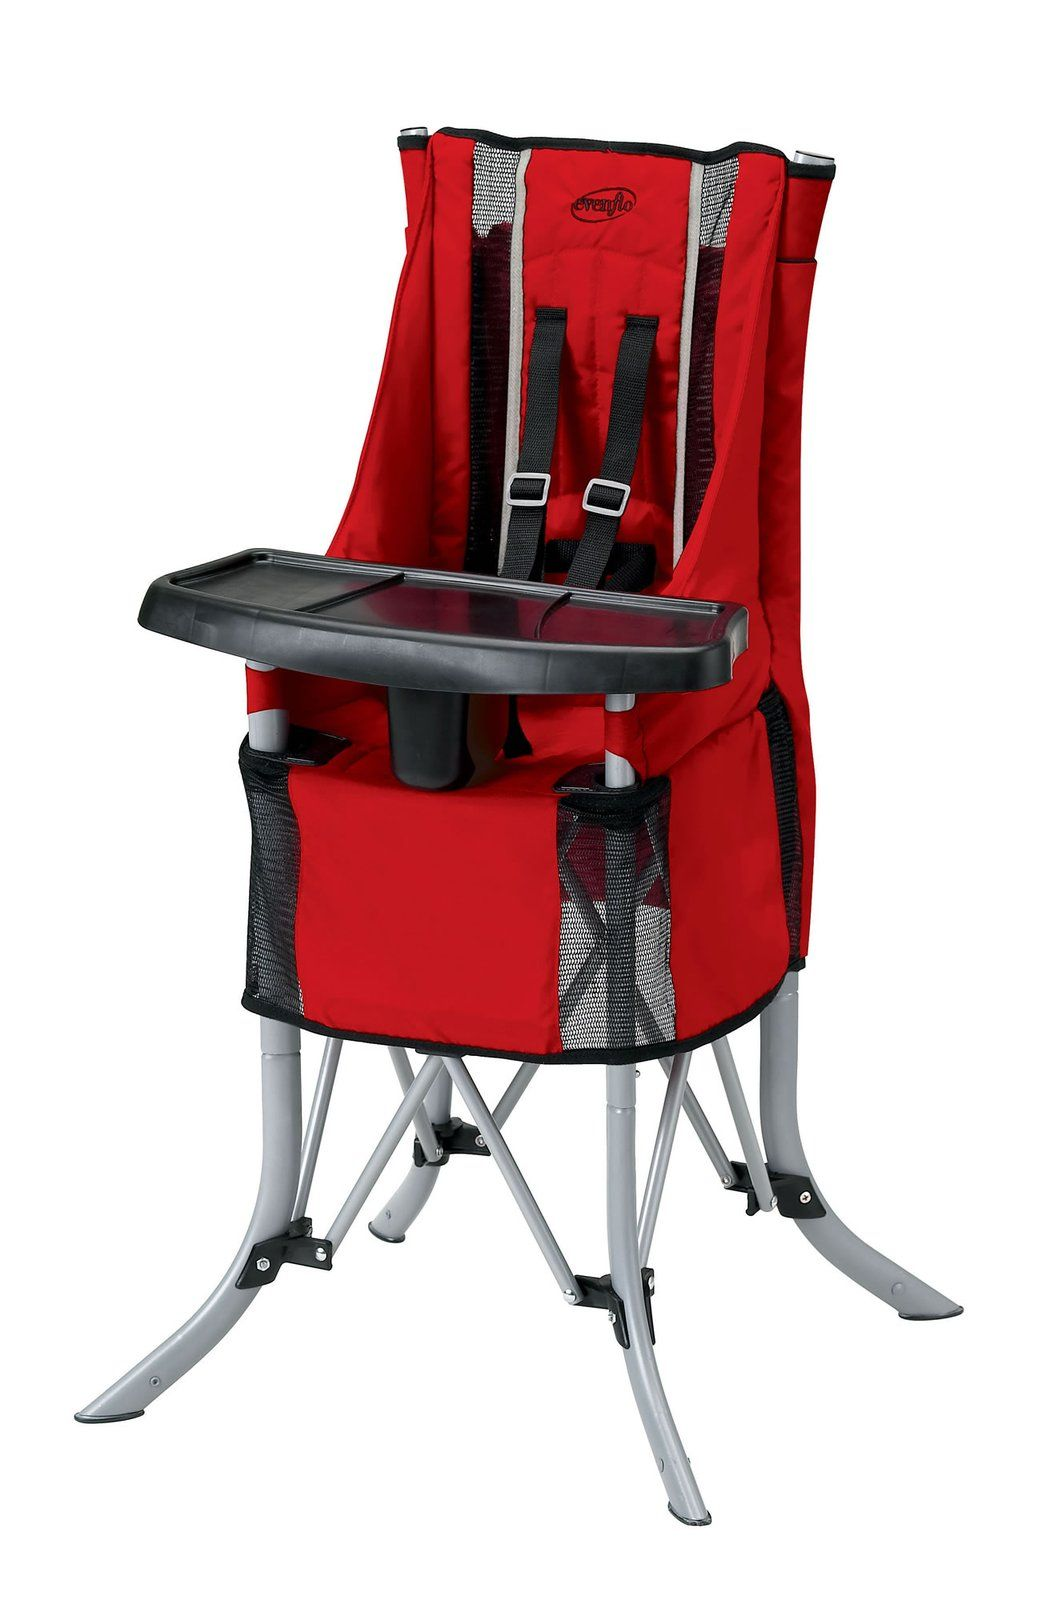 baby camping high chair kitchen chairs for heavy people evenflo babygo travel red best price